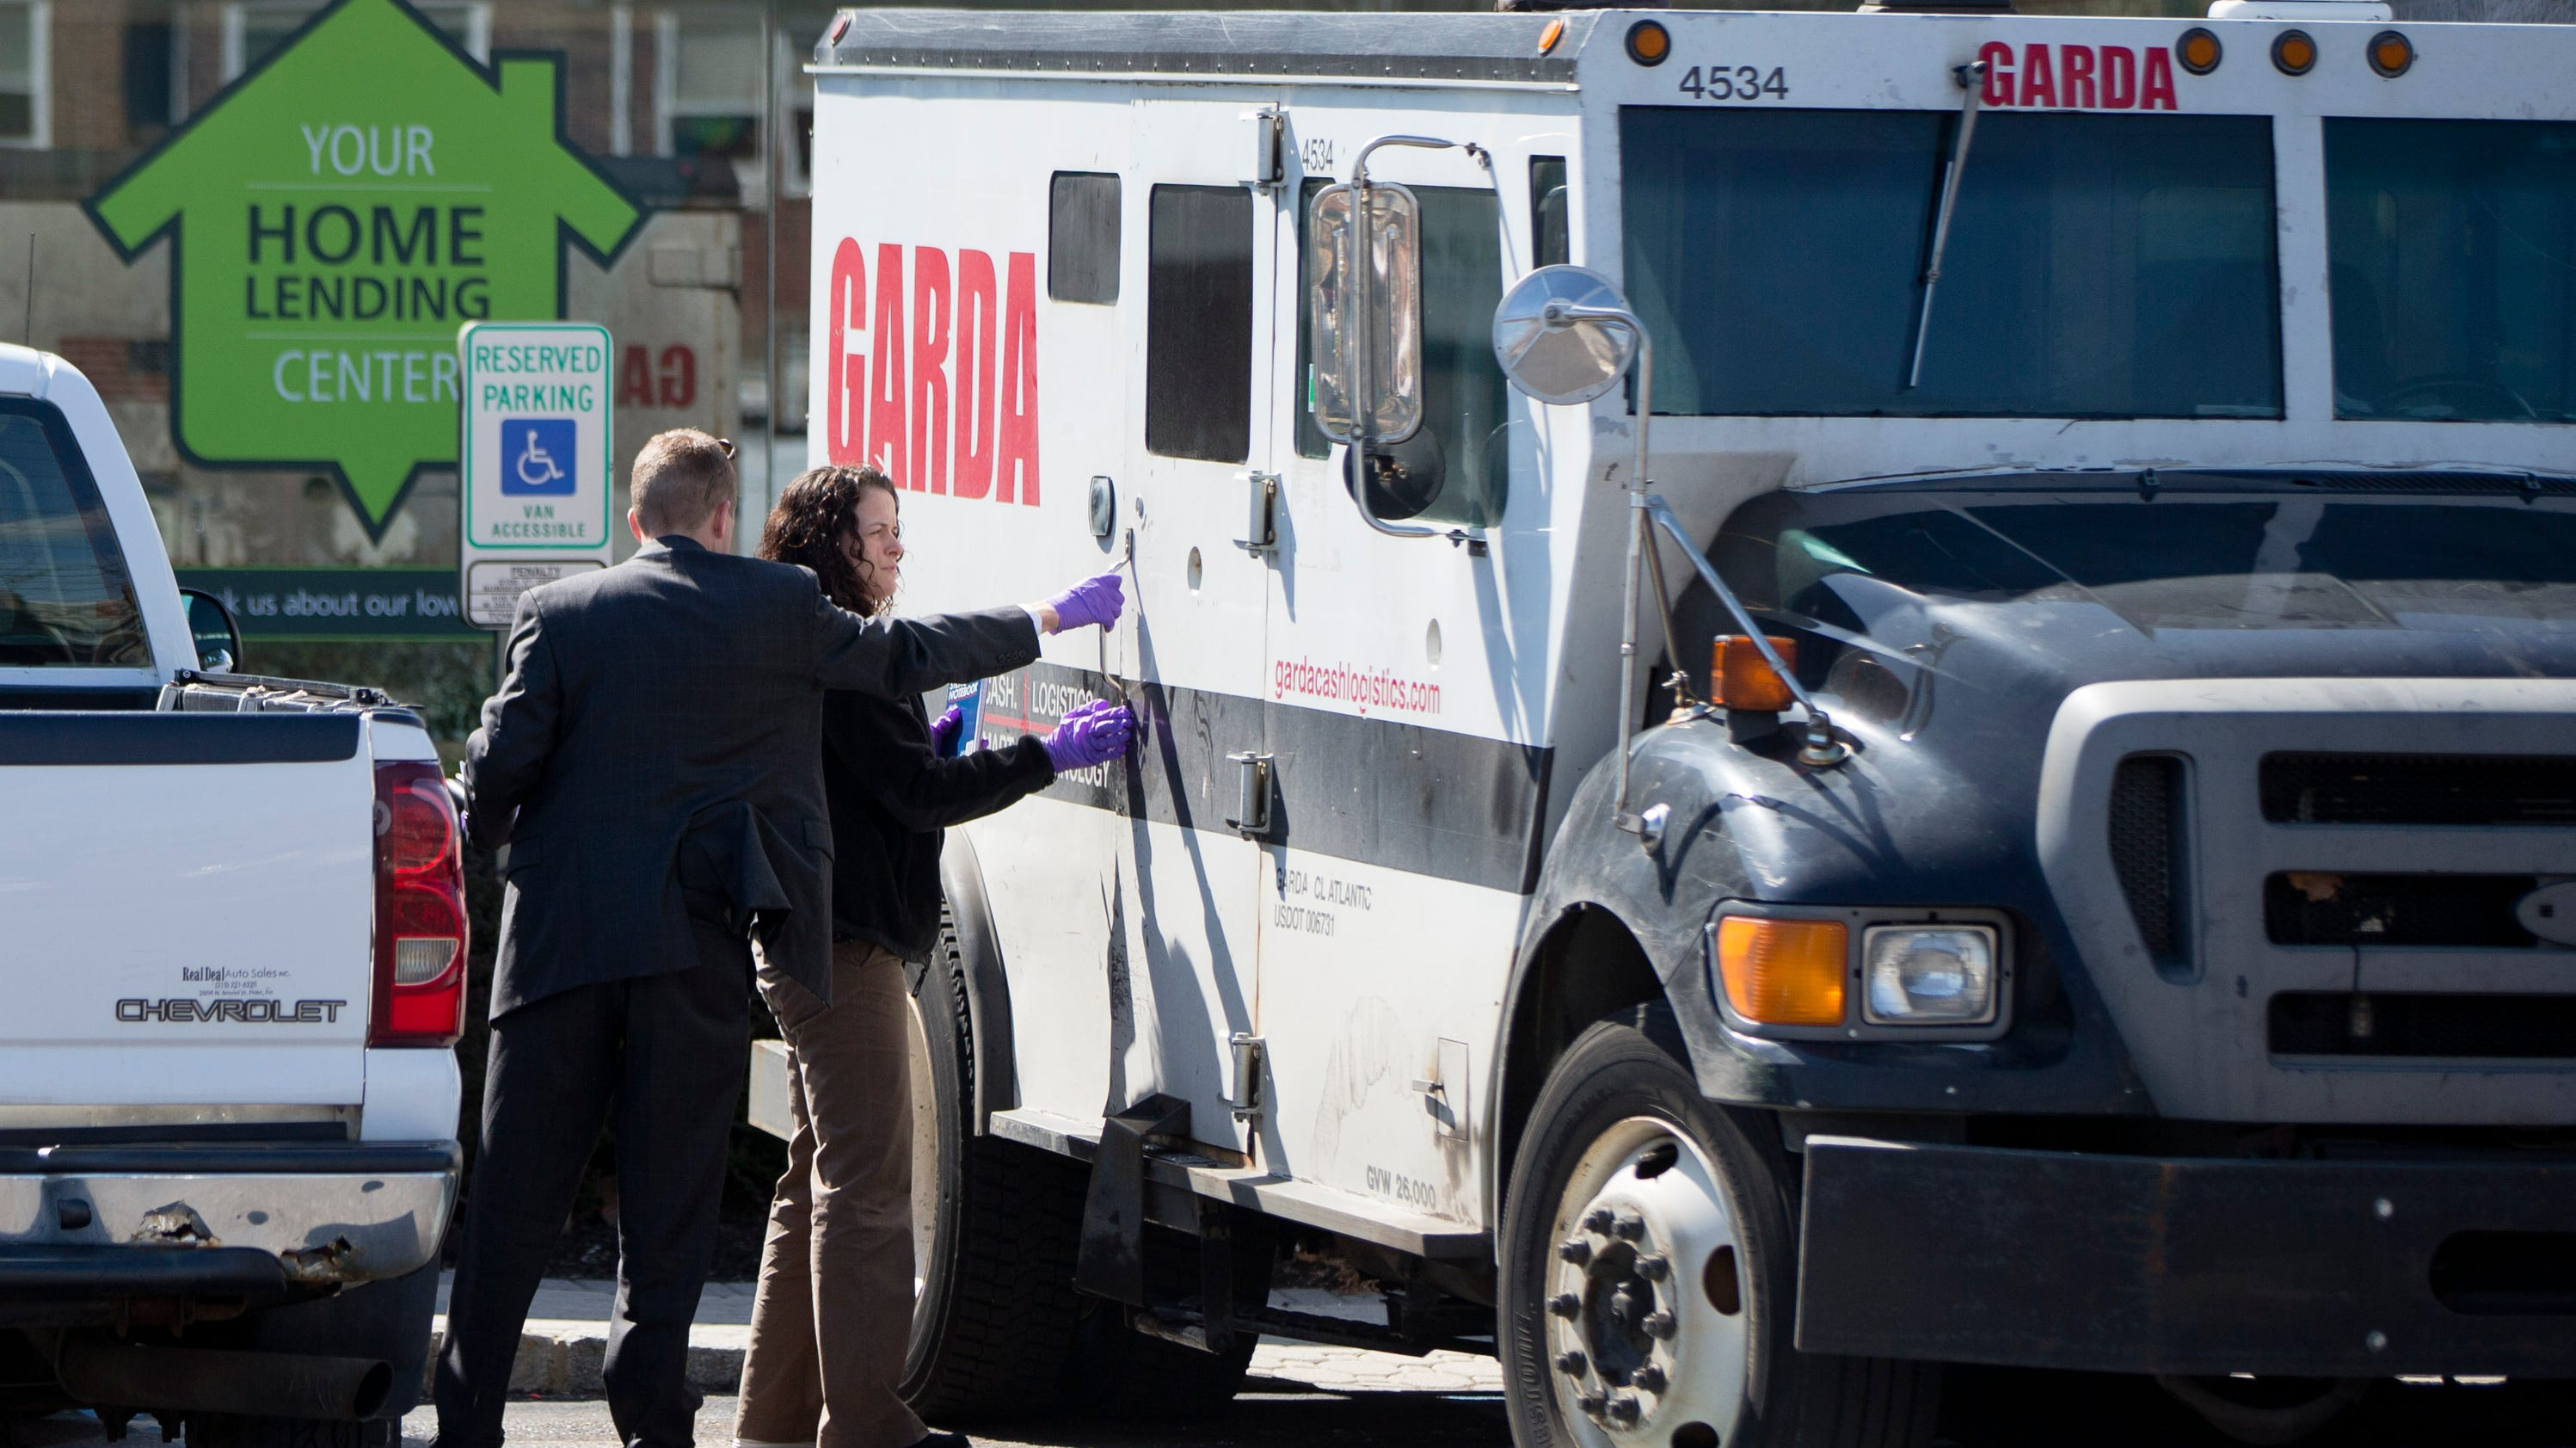 Phila Robbers Steal 105k From Armored Truck